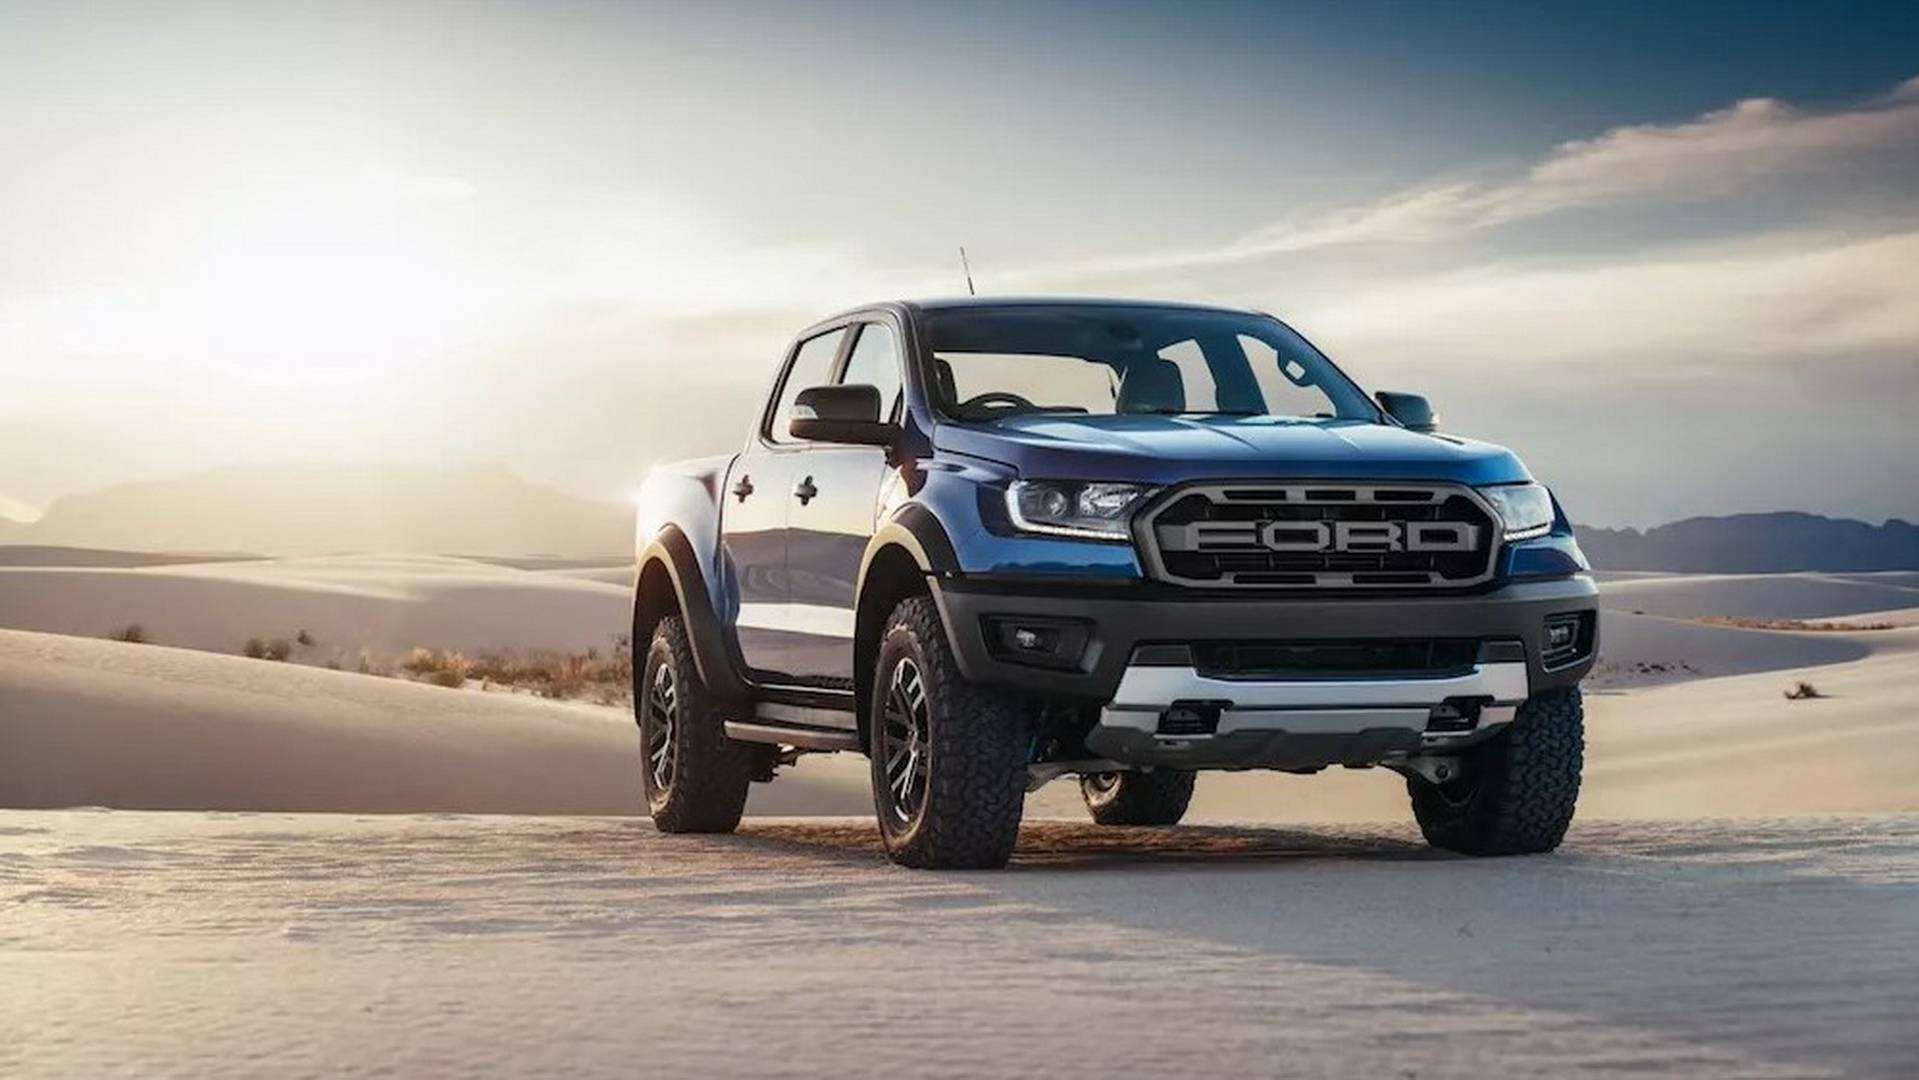 22 Great New How Much Is A 2019 Ford Raptor Specs Performance by New How Much Is A 2019 Ford Raptor Specs